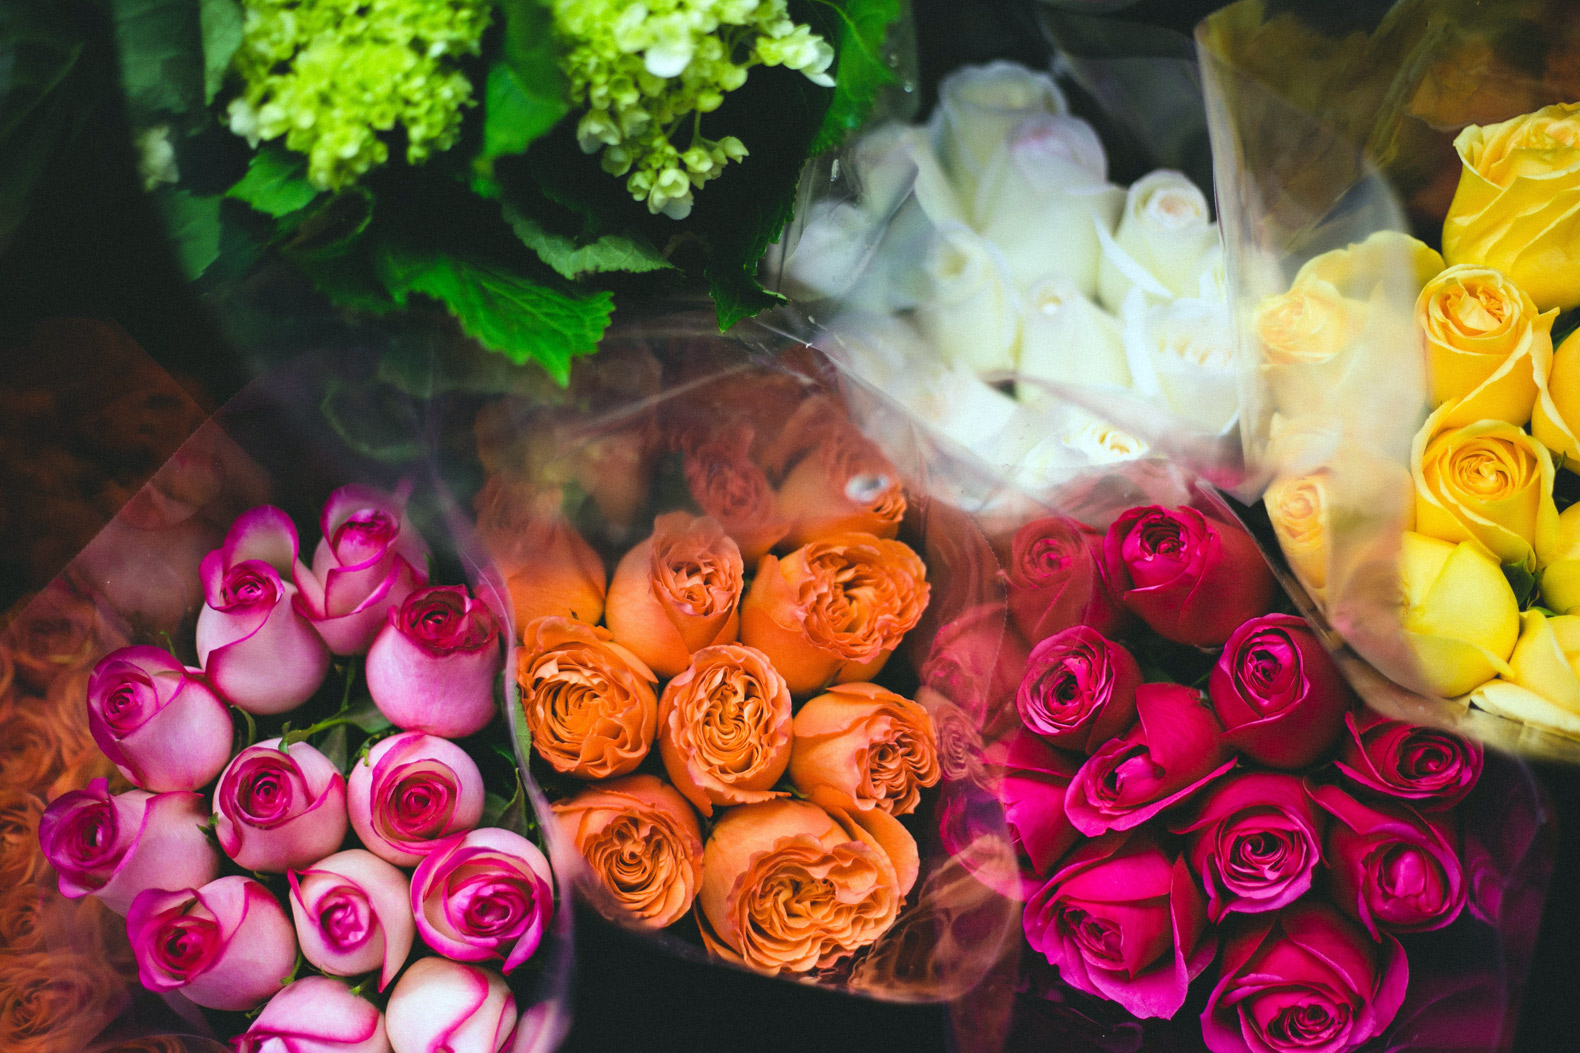 Valentine's Day flower deliveries come at a huge cost to the environment